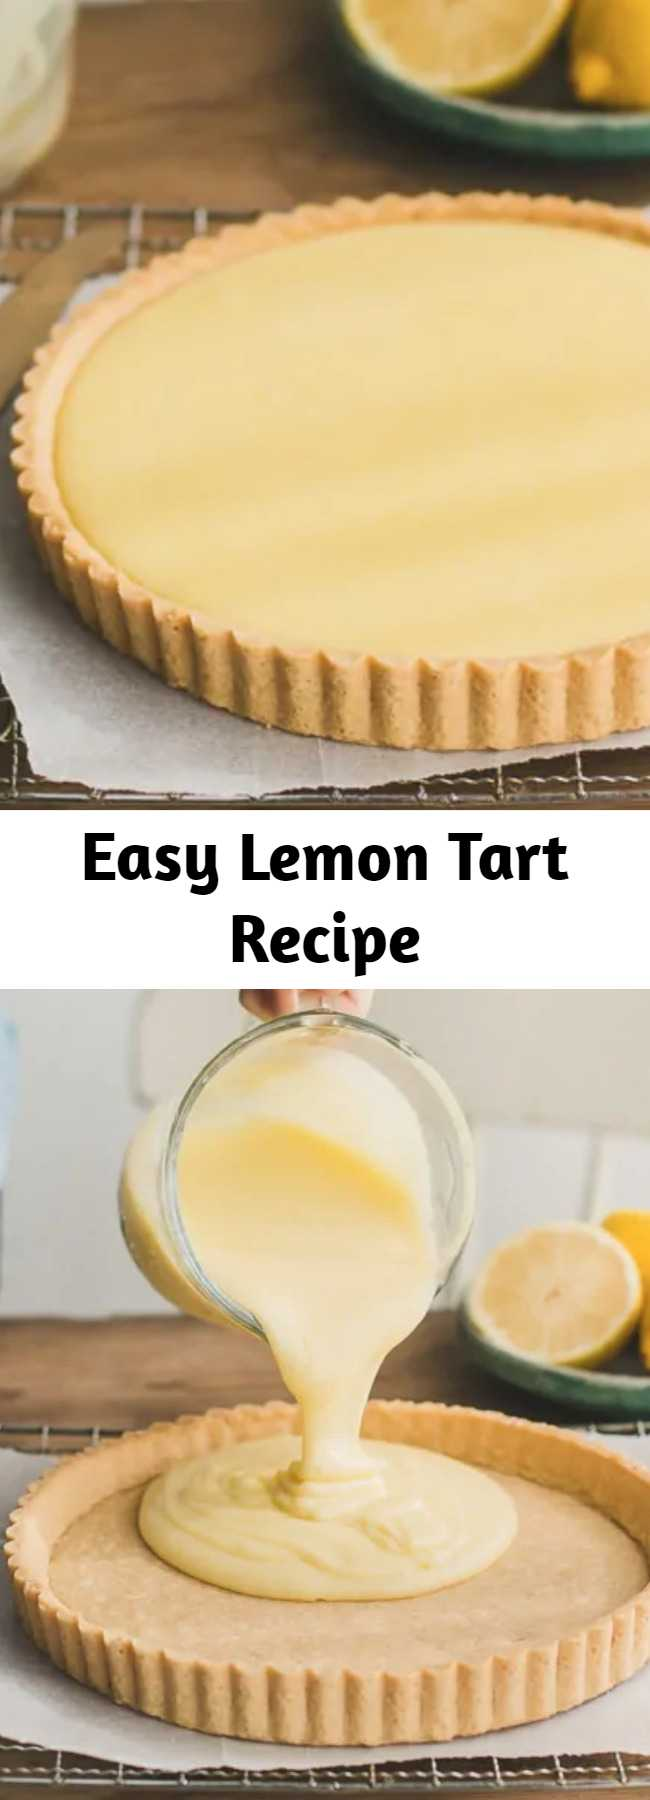 Easy Lemon Tart Recipe - This traditional French lemon tart recipe has been a favorite in my family for years! It's made of a classic sweet tart crust and a creamy, dreamy lemon curd filling.